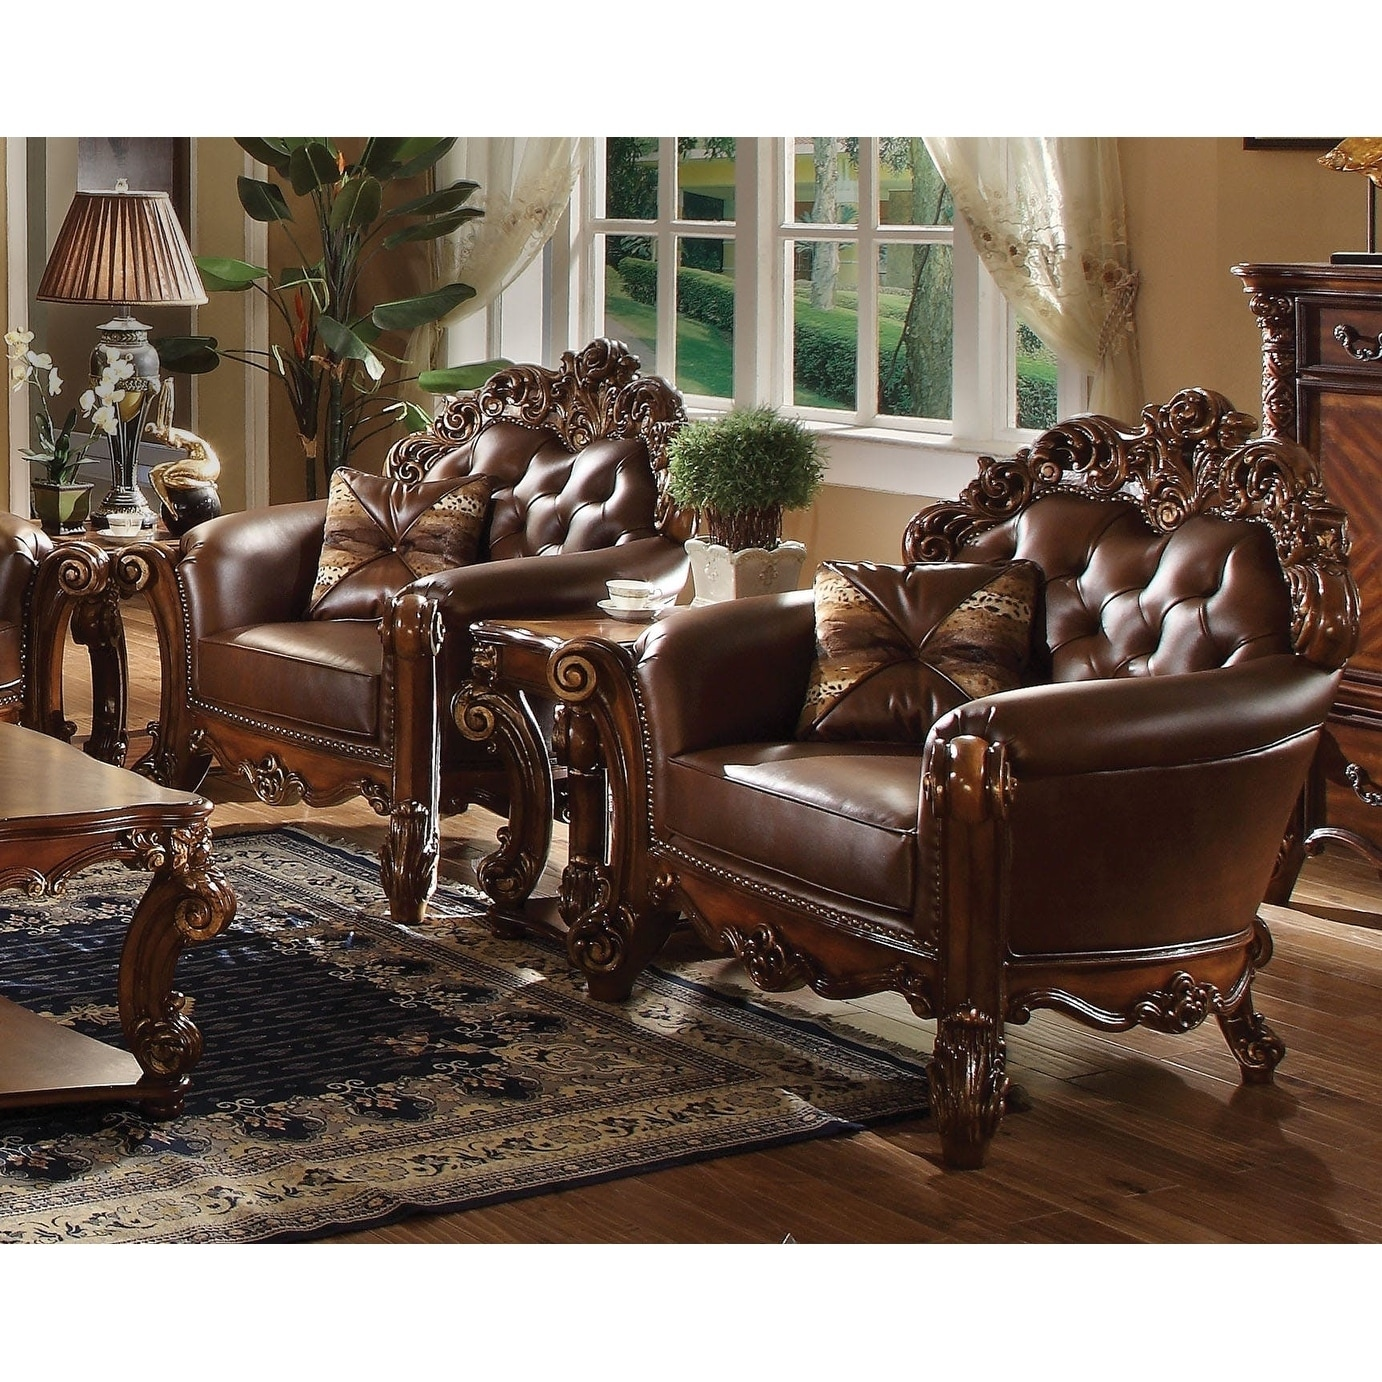 Imperial Looking Leather Tufted Chair With 1 Pillow In Cherry Brown